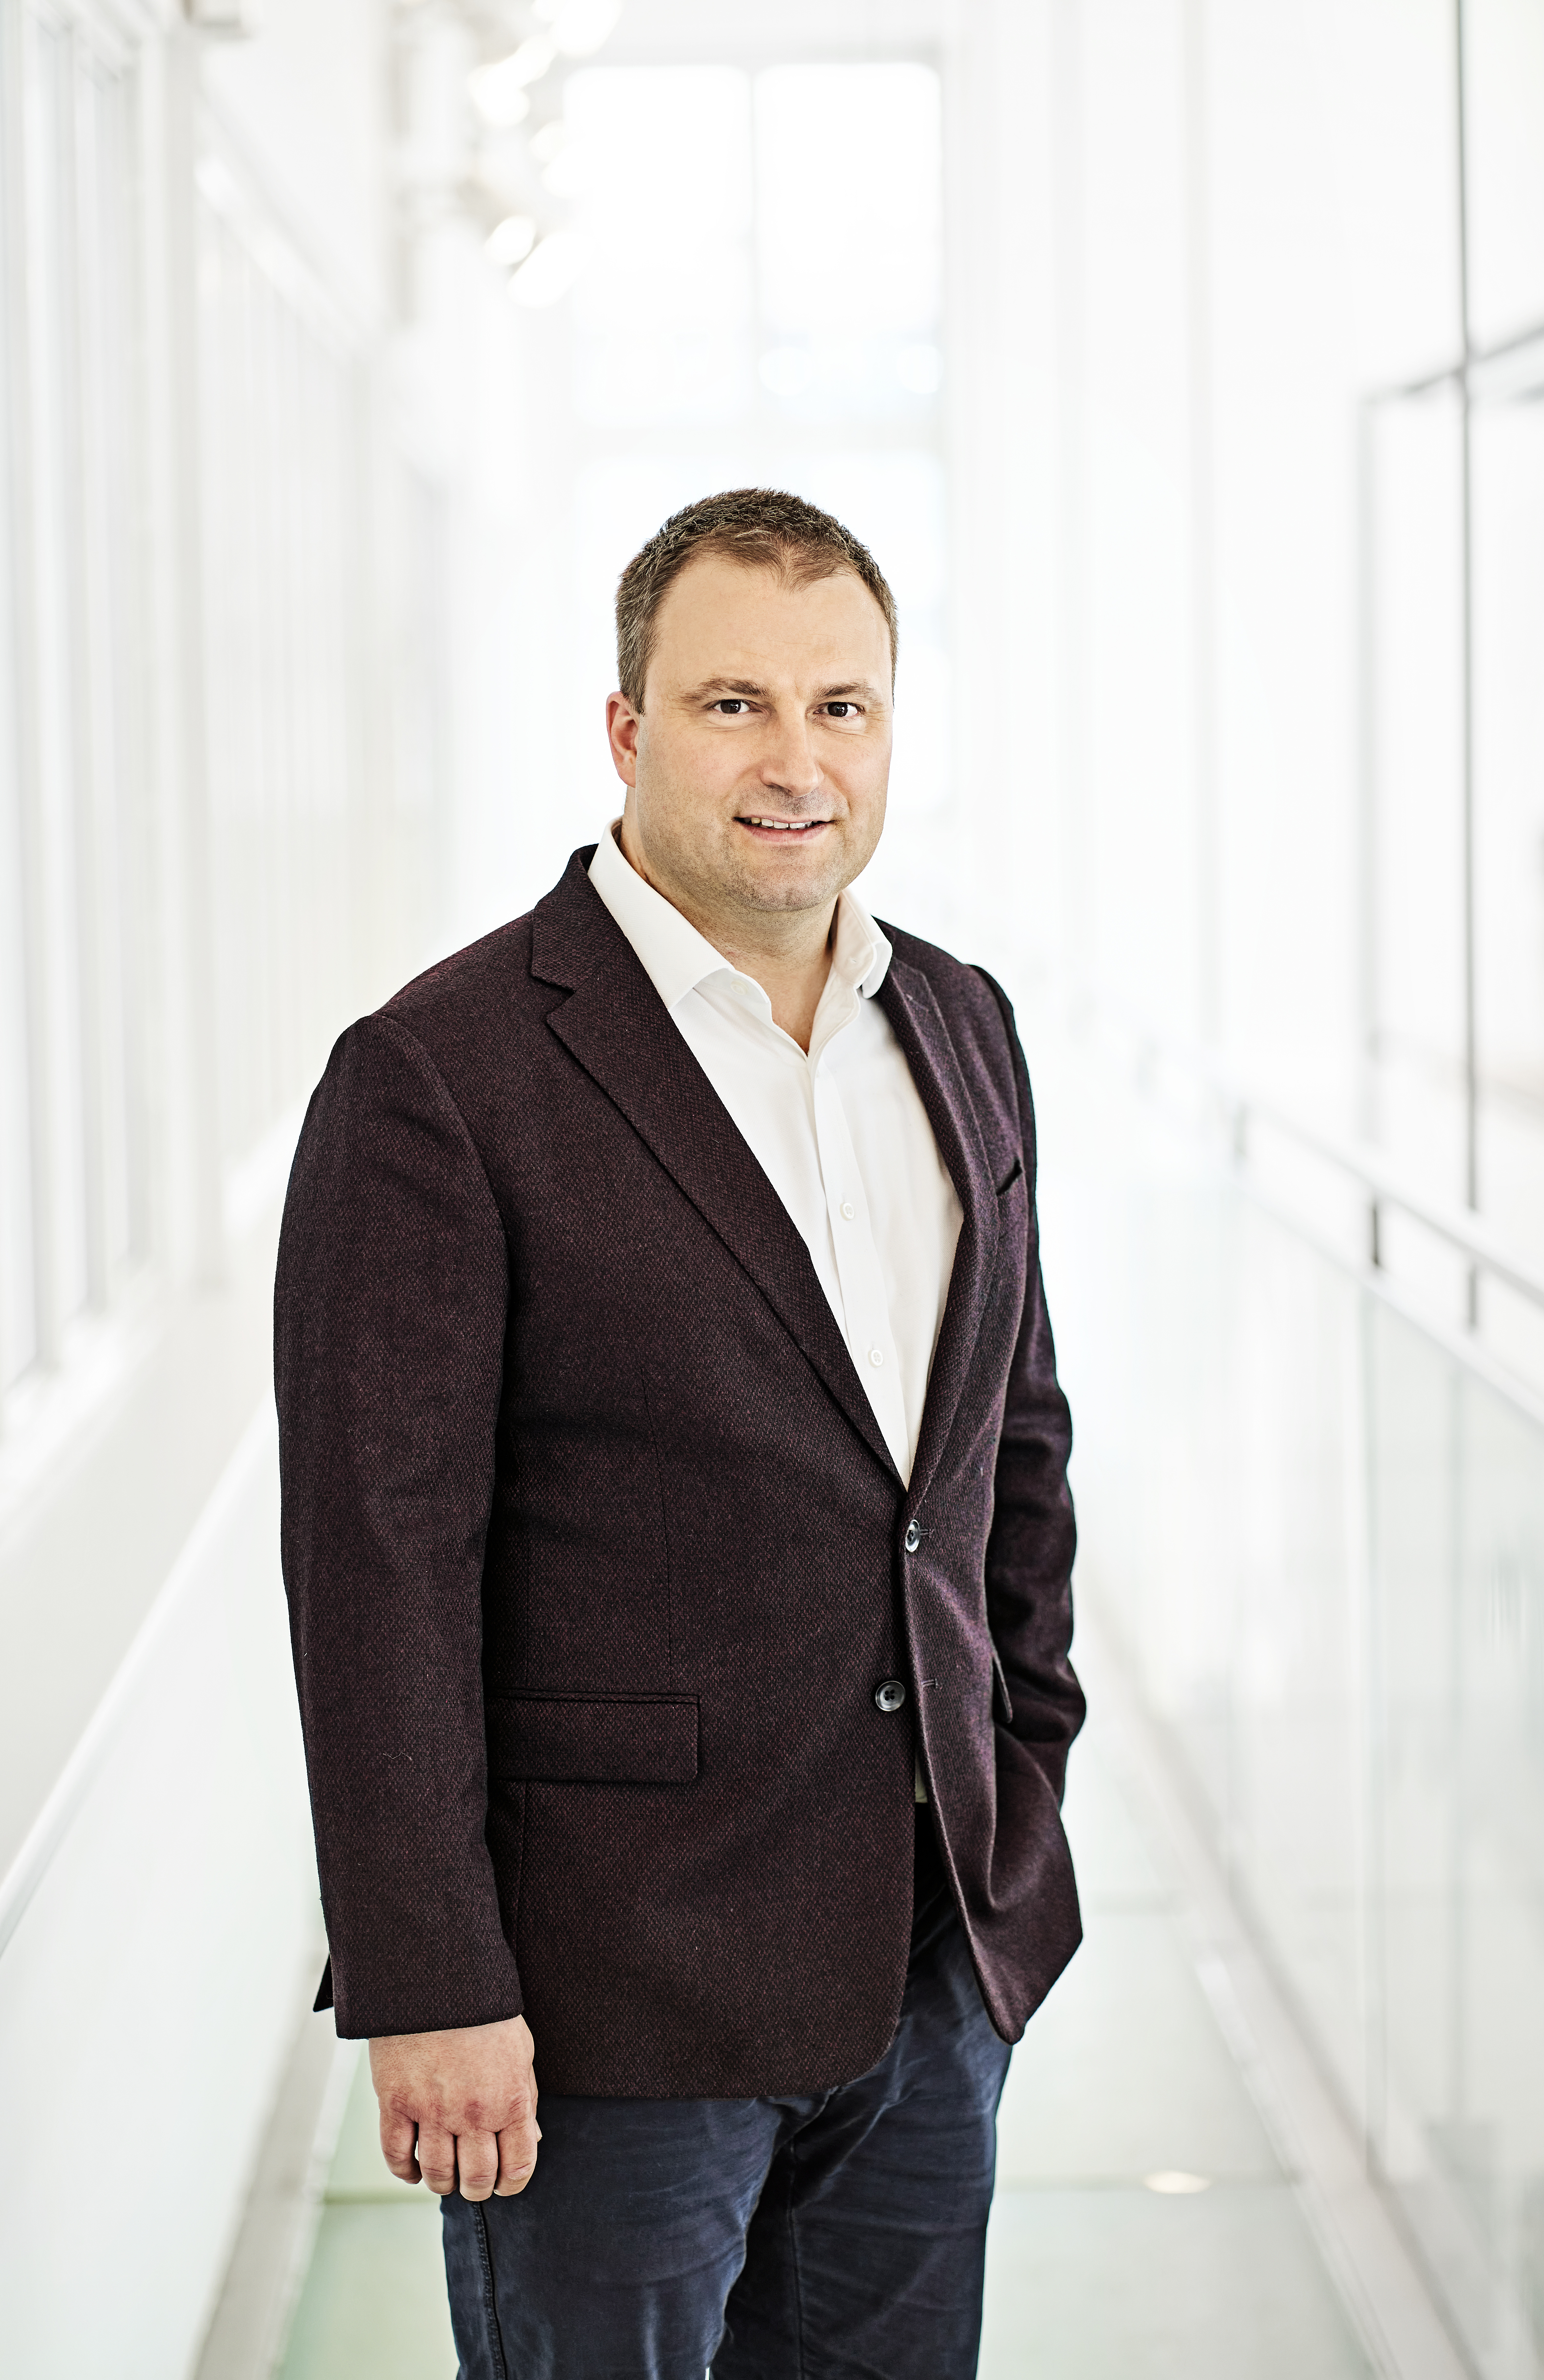 Change of leadership at the SKODA division of Volkswagen Group Rus - Image 1